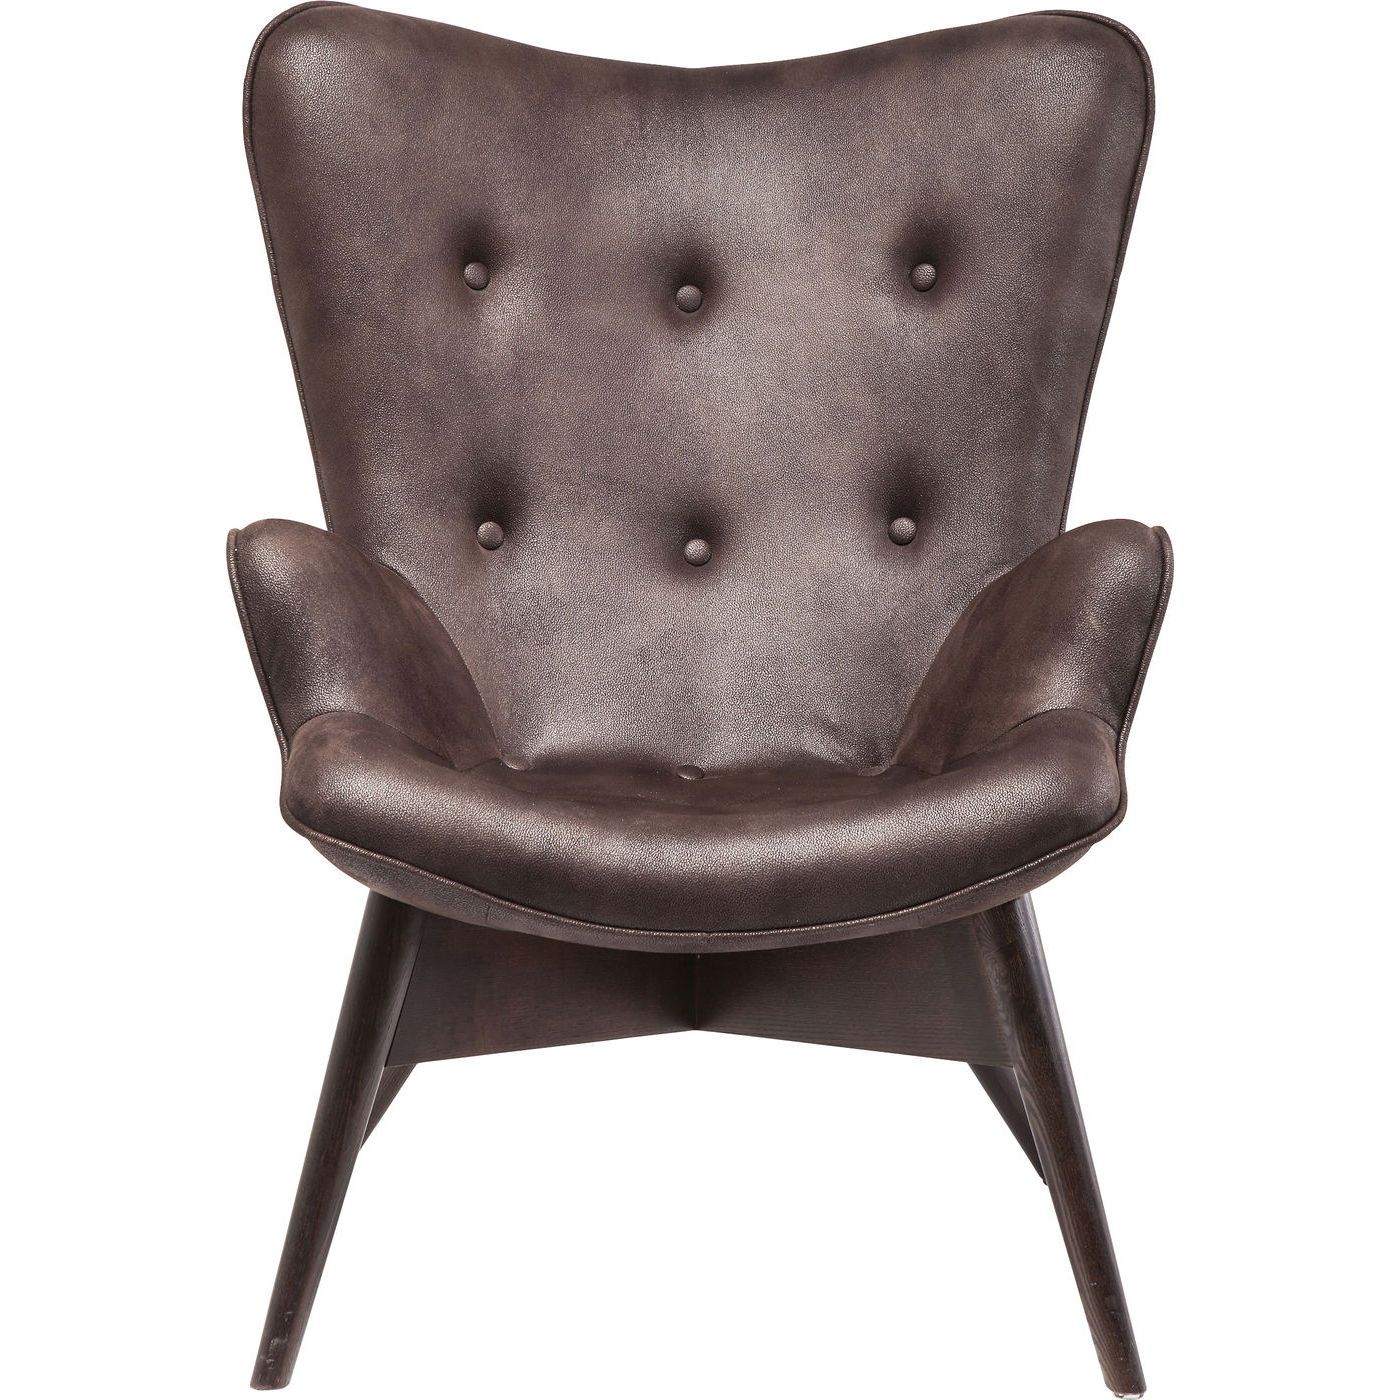 Image of   KARE DESIGN Hvilestol m. Armlæn, Angels s Dark Brown Eco